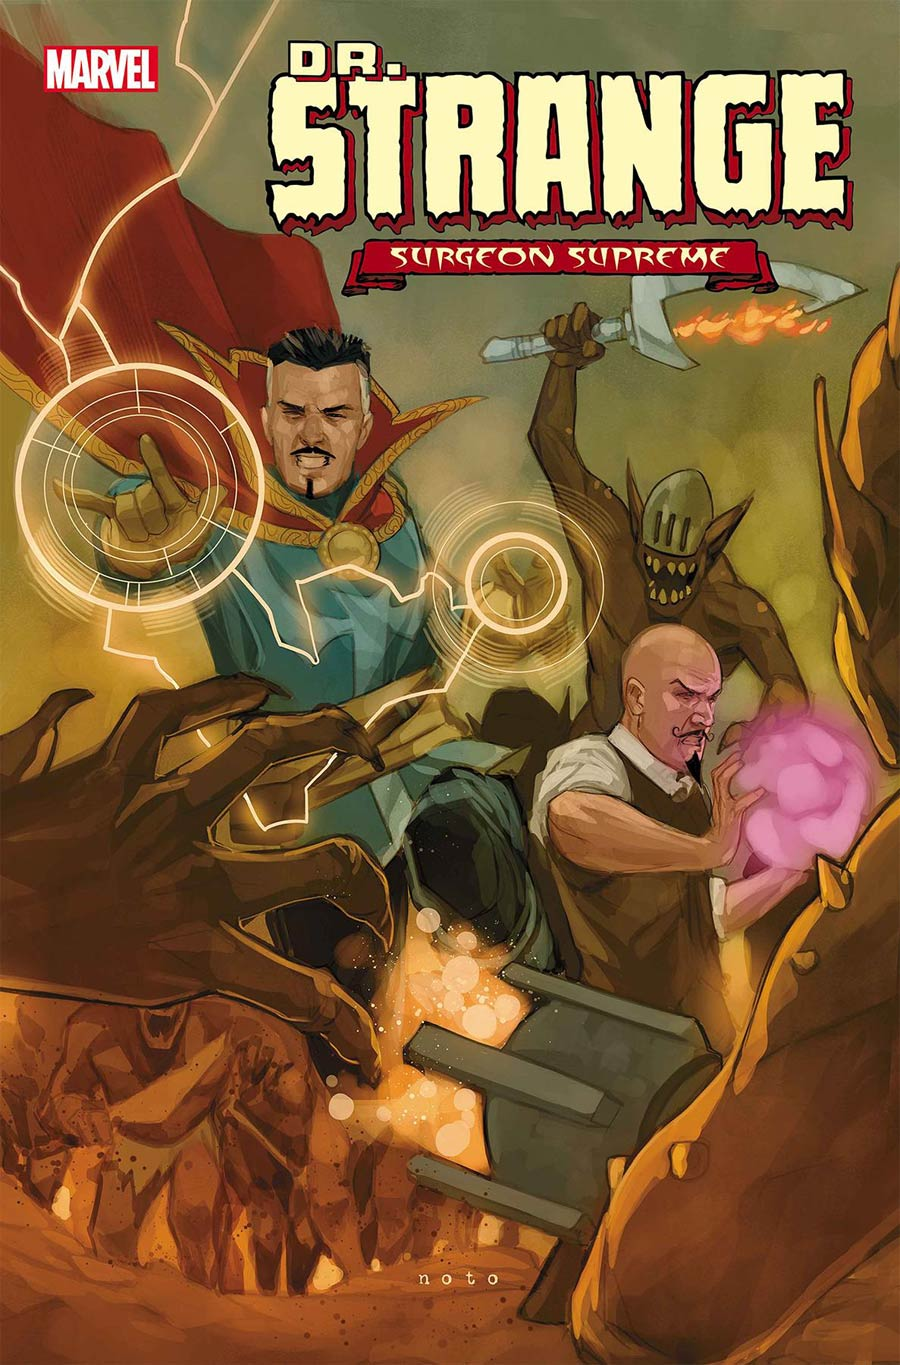 Doctor Strange Surgeon Supreme #6 Cover A Regular Phil Noto Cover